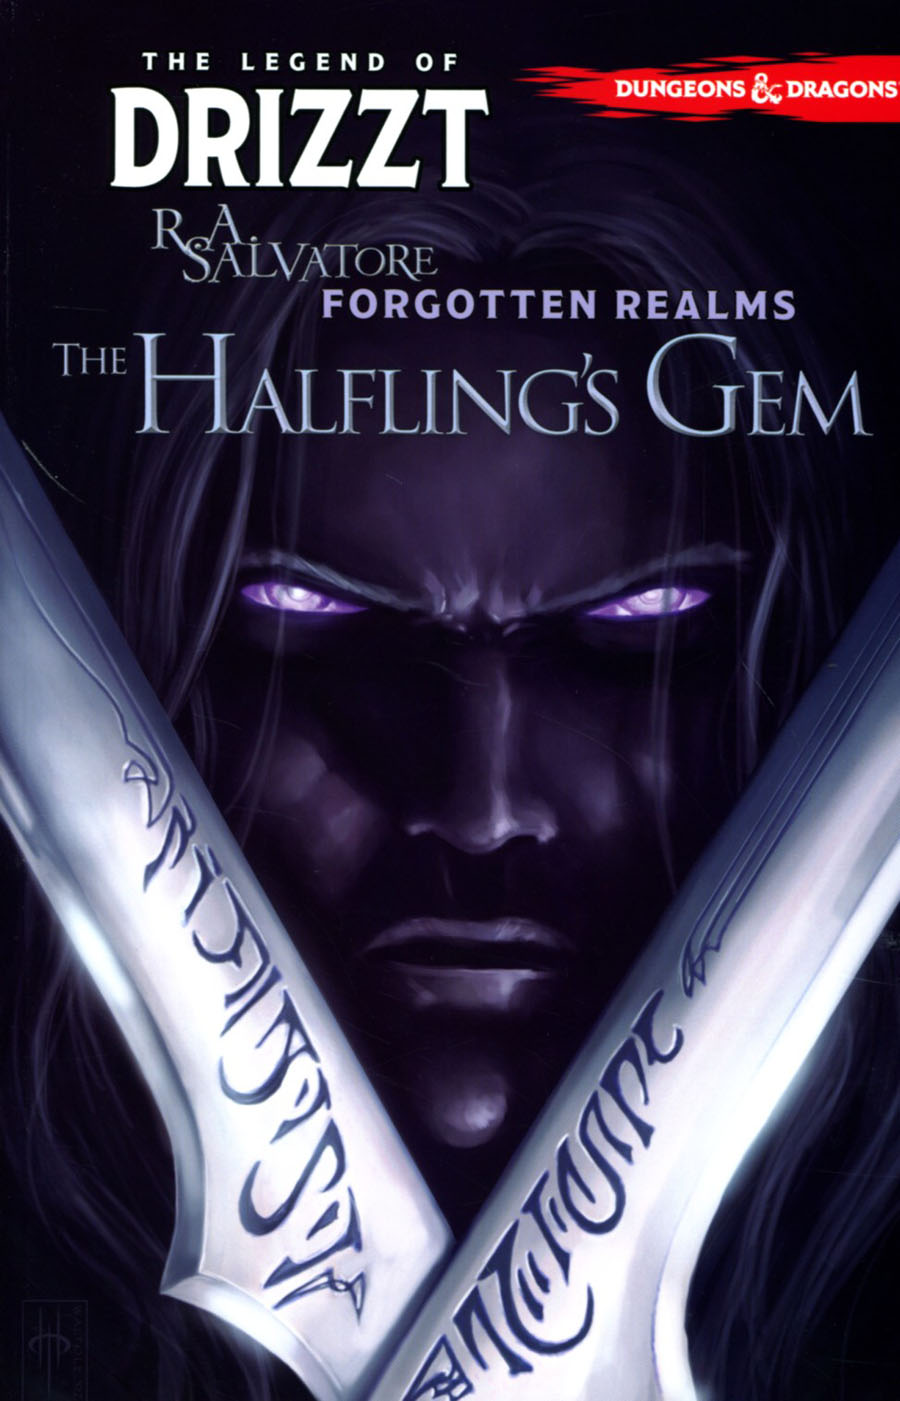 Dungeons & Dragons Forgotten Realms Legend Of Drizzt Vol 6 Halfings Gem TP IDW Edition